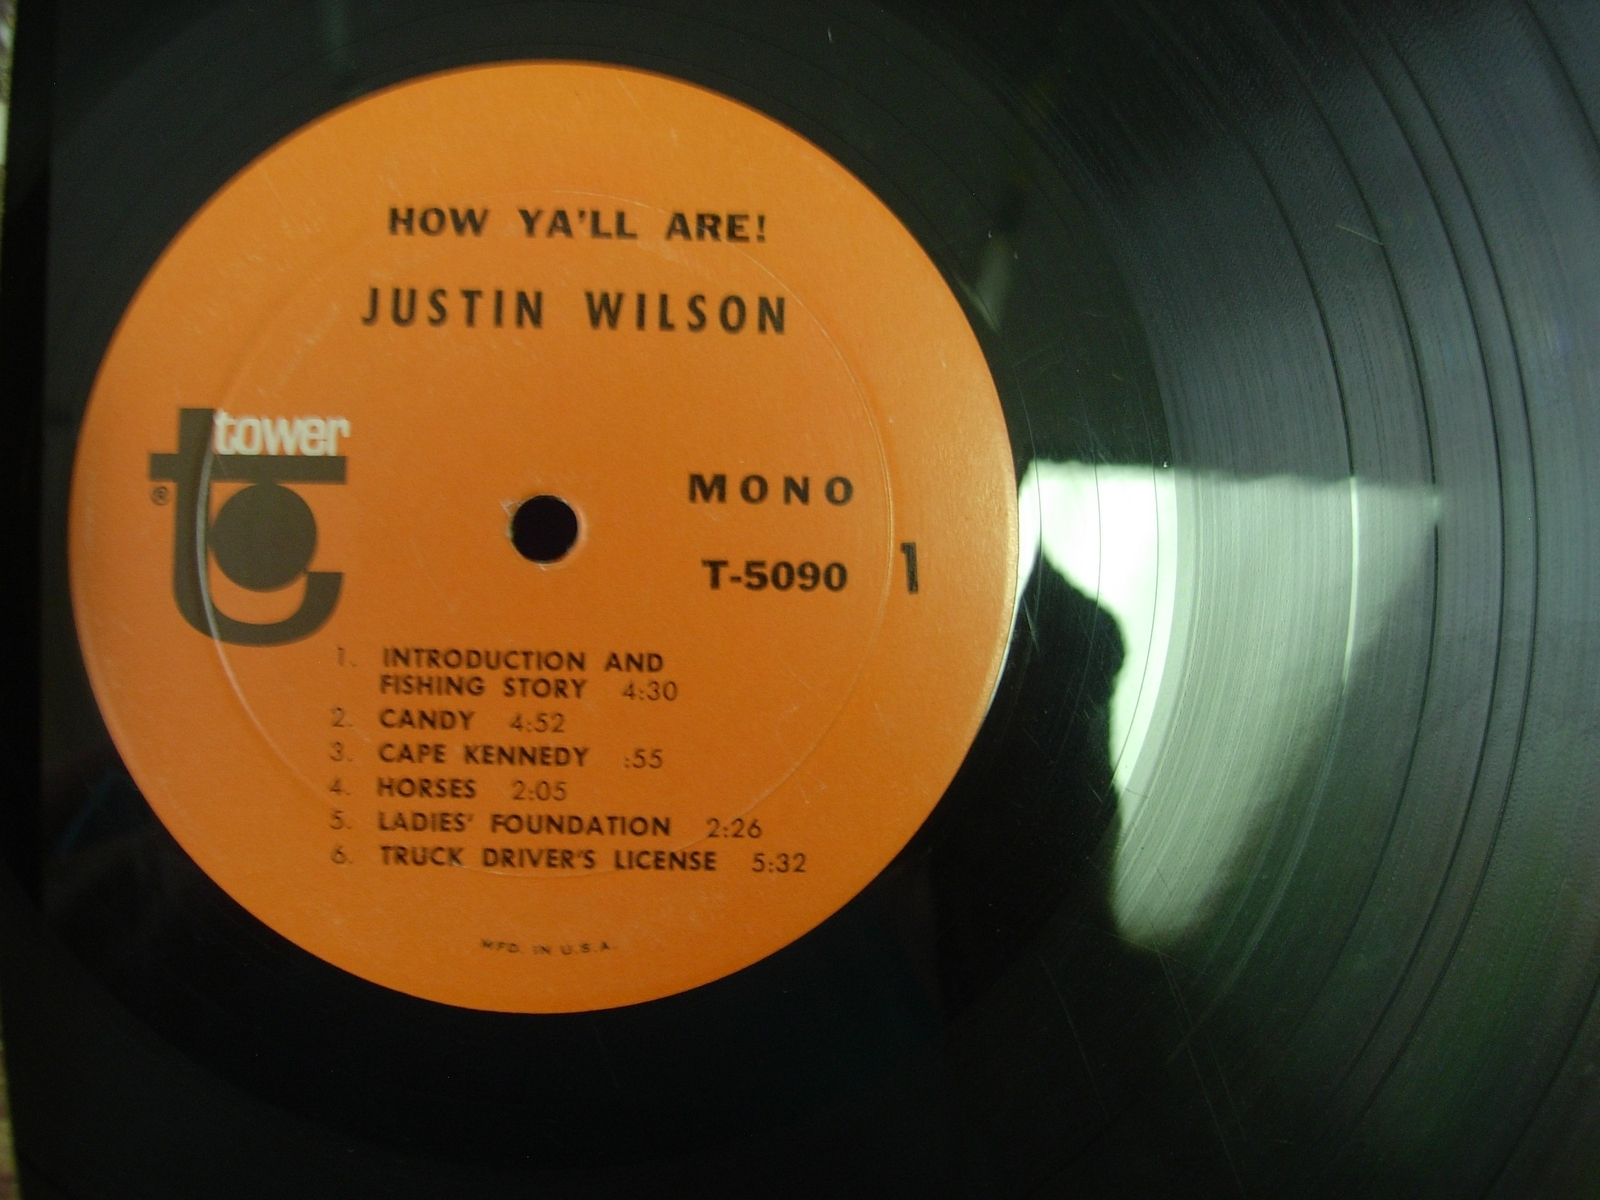 Justin Wilson - How Y'all Are! - Tower Records T-5090